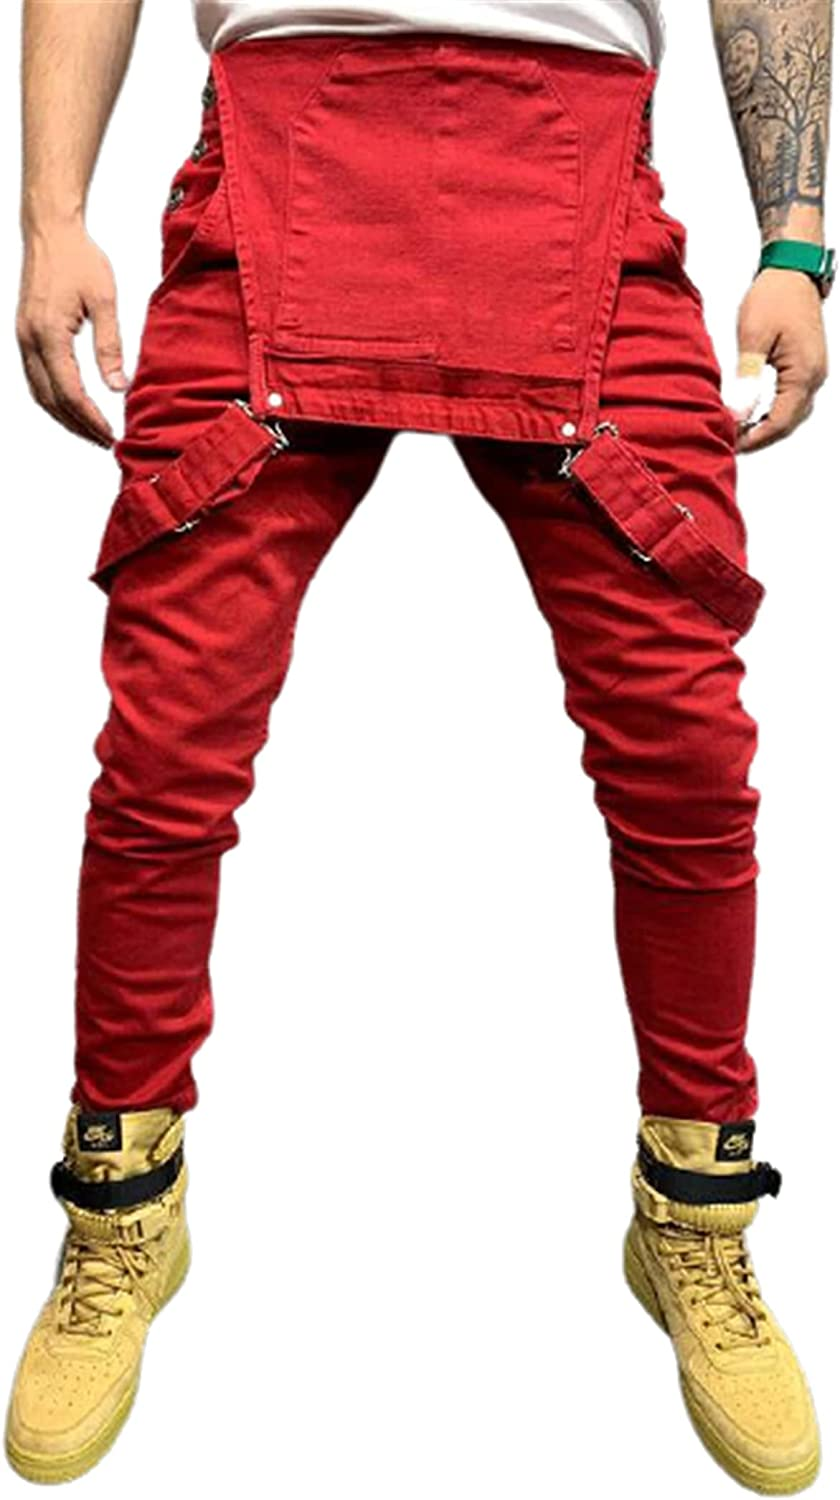 CNBPLS Men's Solid Color Denim Overalls,Sexy Slim Skinny Overall,Suspender Romper Trousers Jeans